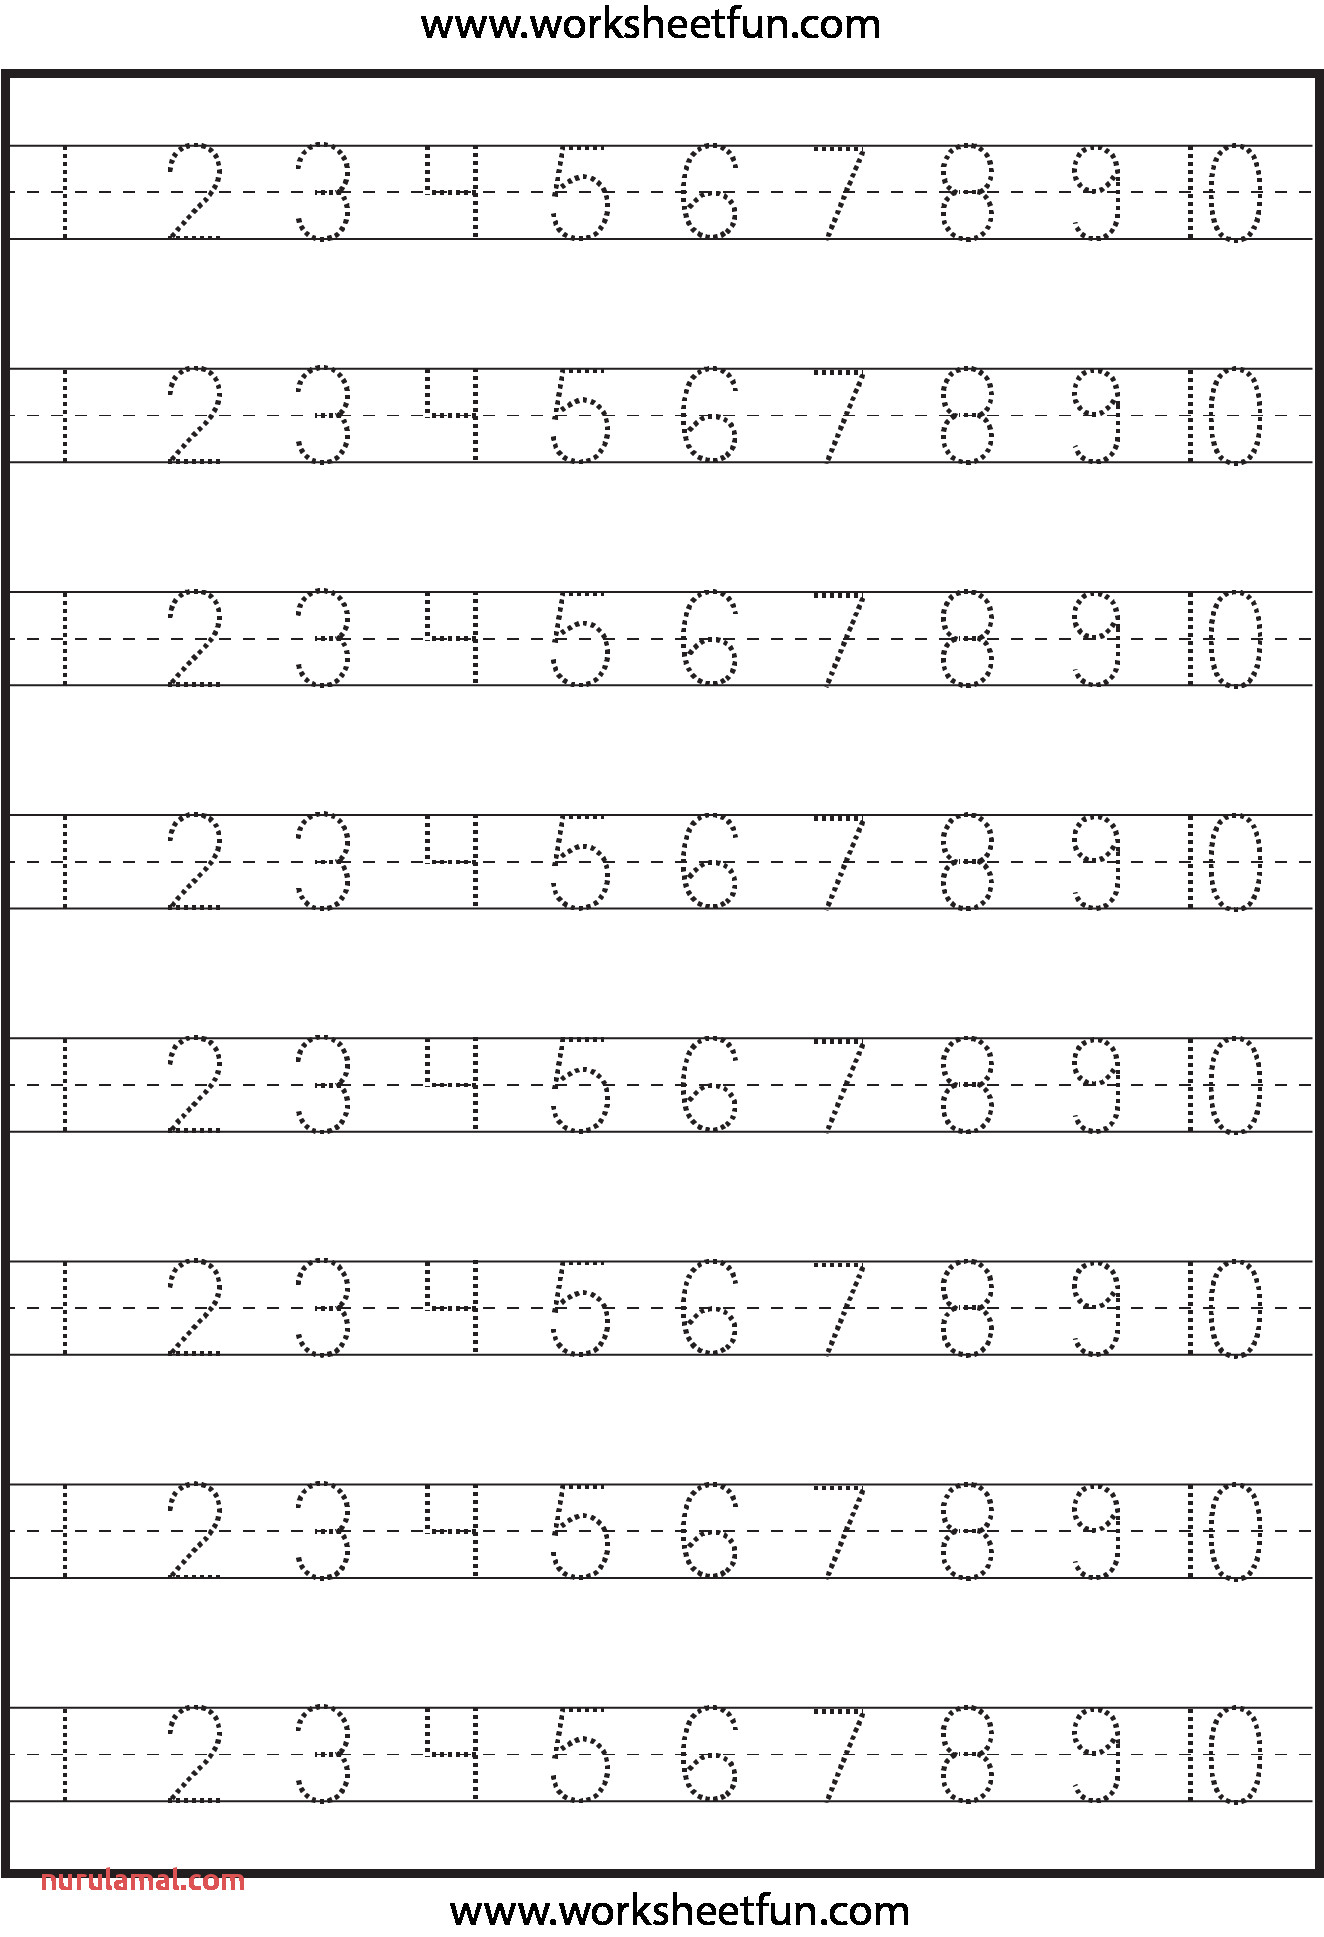 Printable Preschool Worksheets Number 1